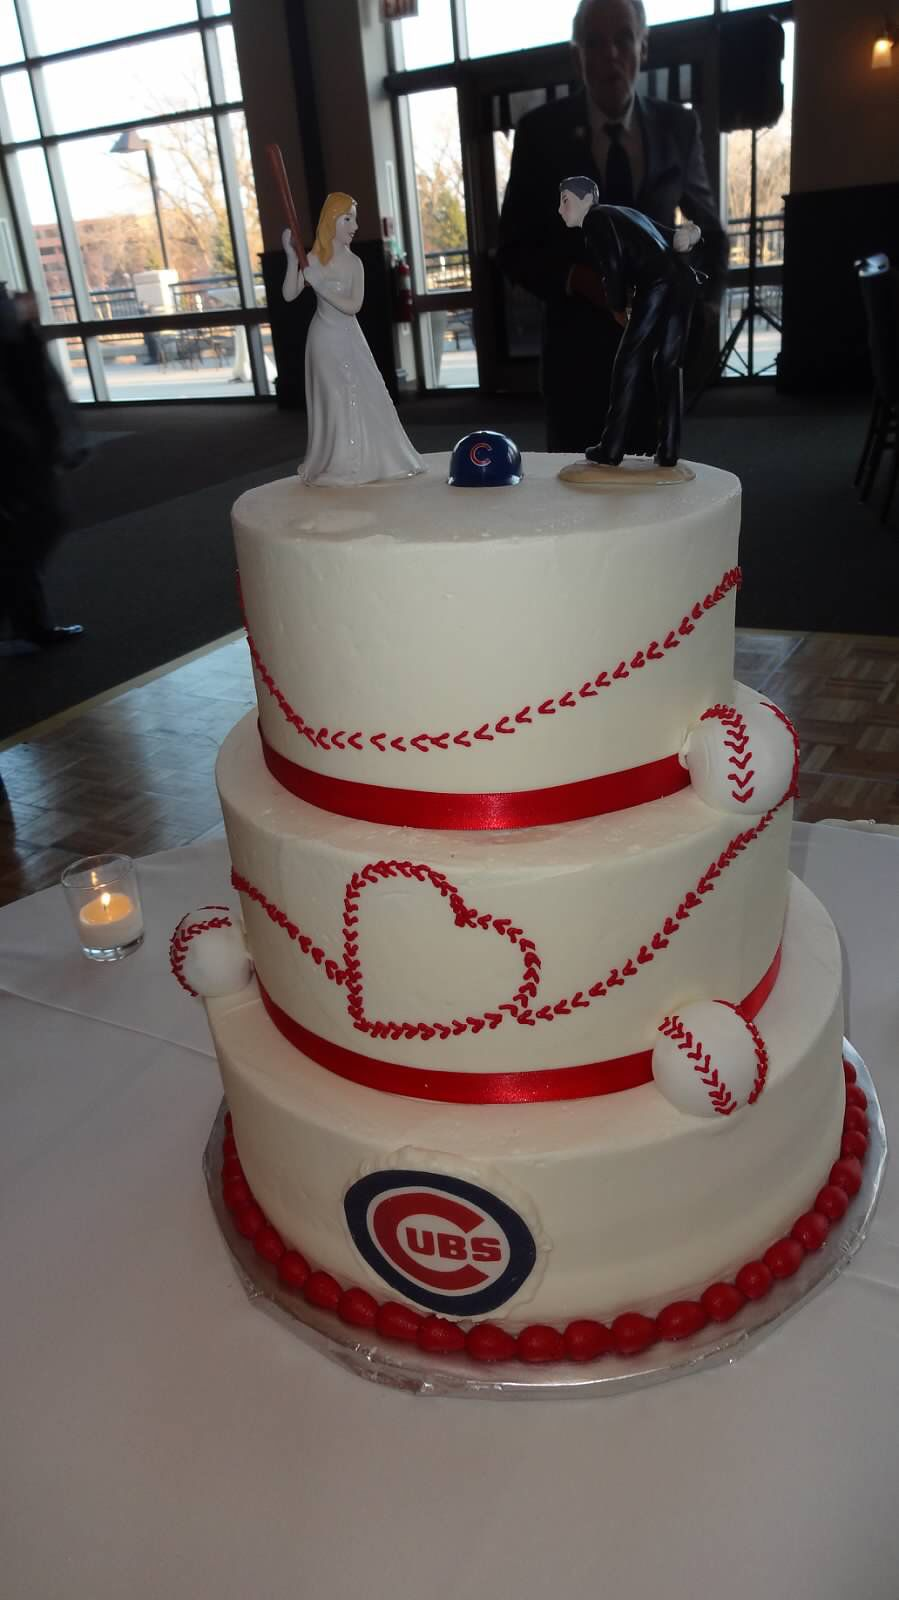 wedding cakes in chicago chicago cubs baseball wedding cake ケーキ ケーキ 24600